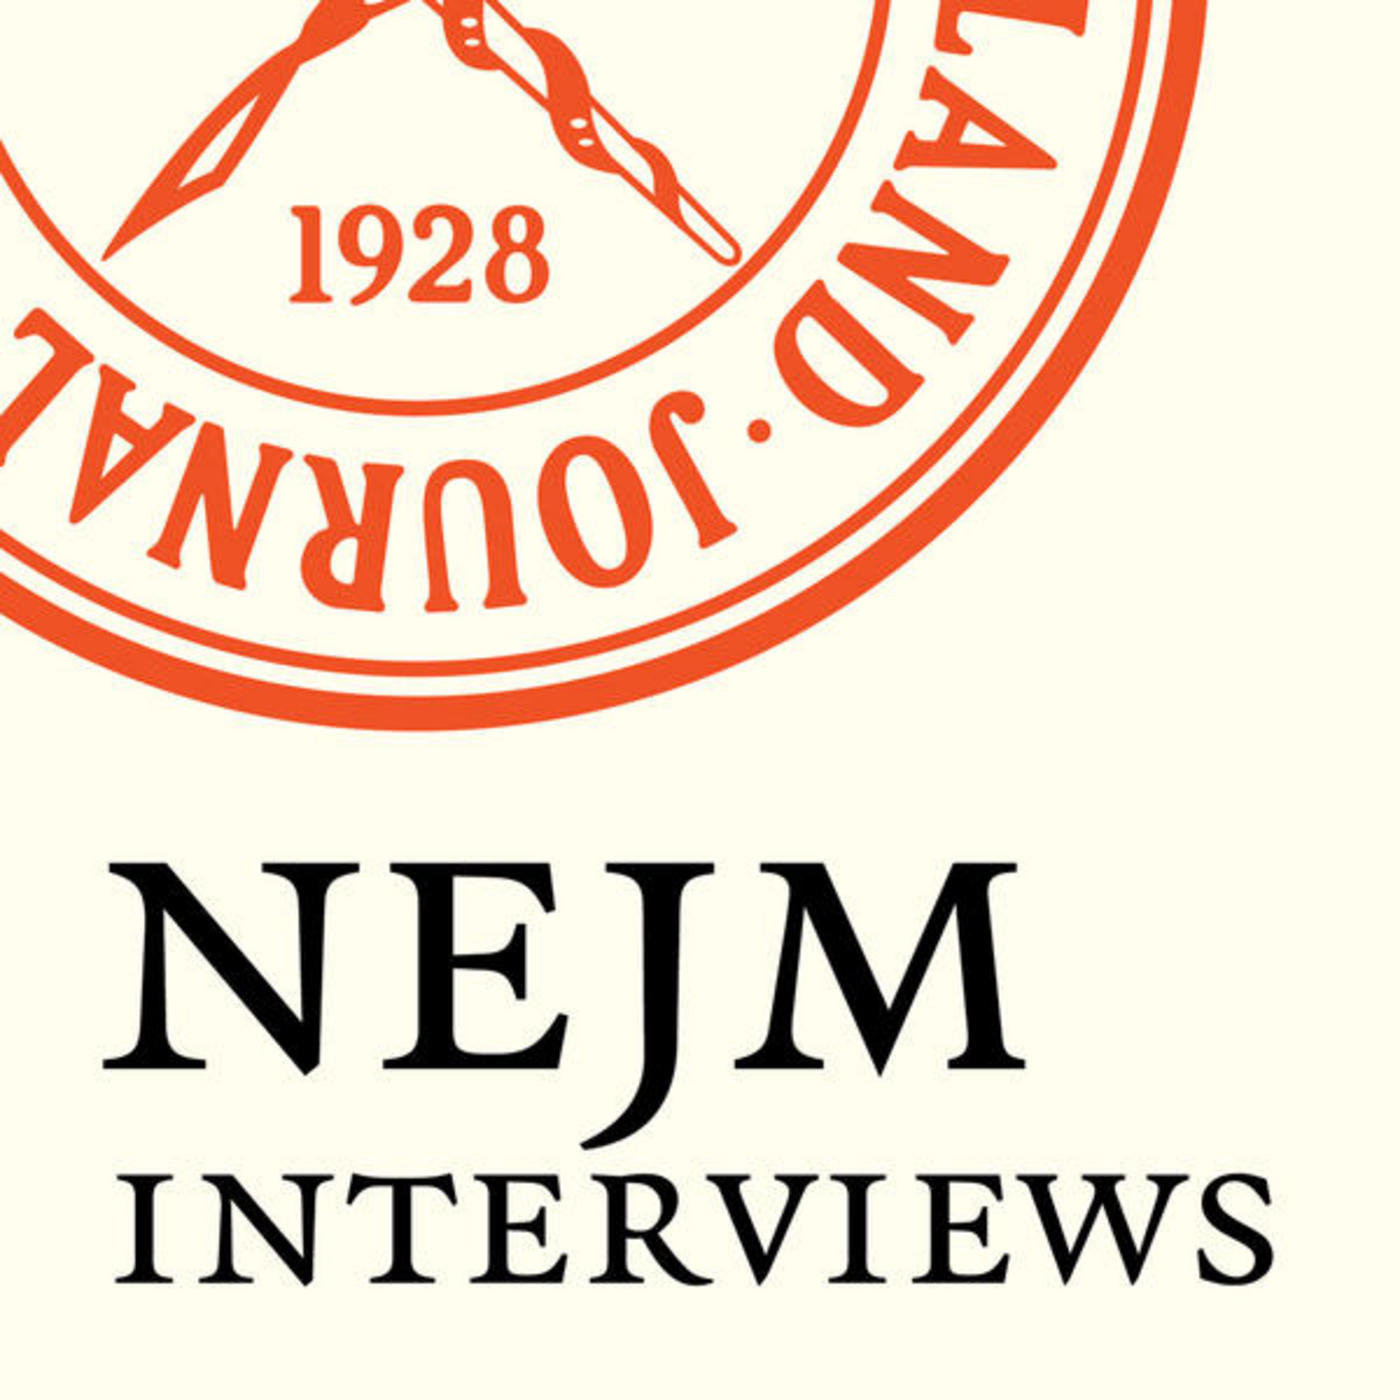 NEJM Interview: Prof. Ted Kaptchuk on the outlook for harnessing the benefits of placebo effects in medicine.